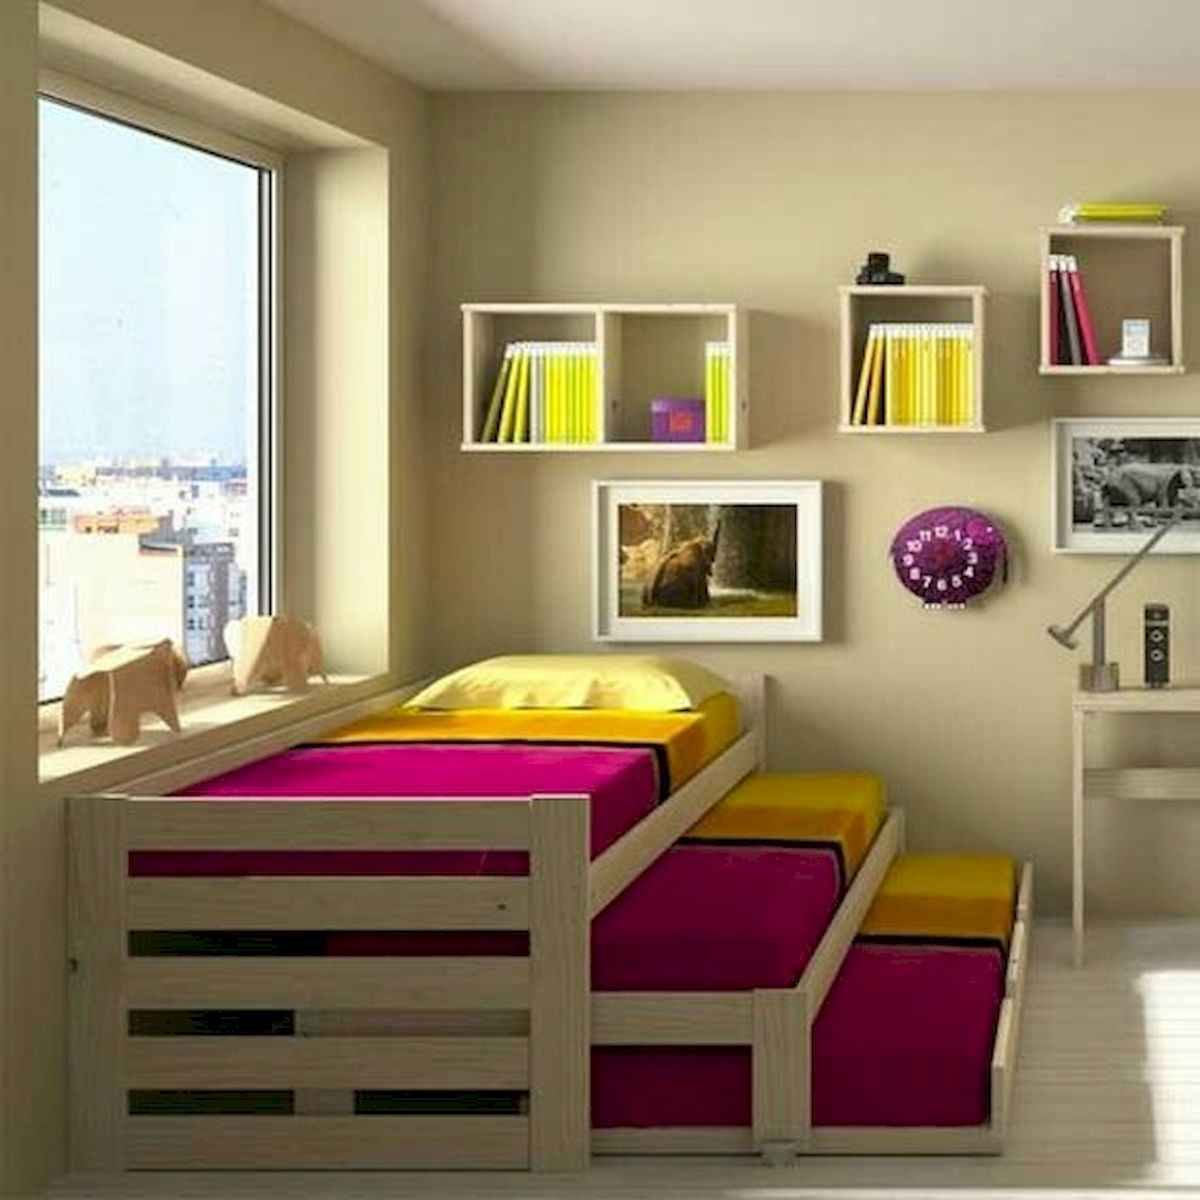 50 Creative Recycled DIY Projects Pallet Beds Design Ideas (38)